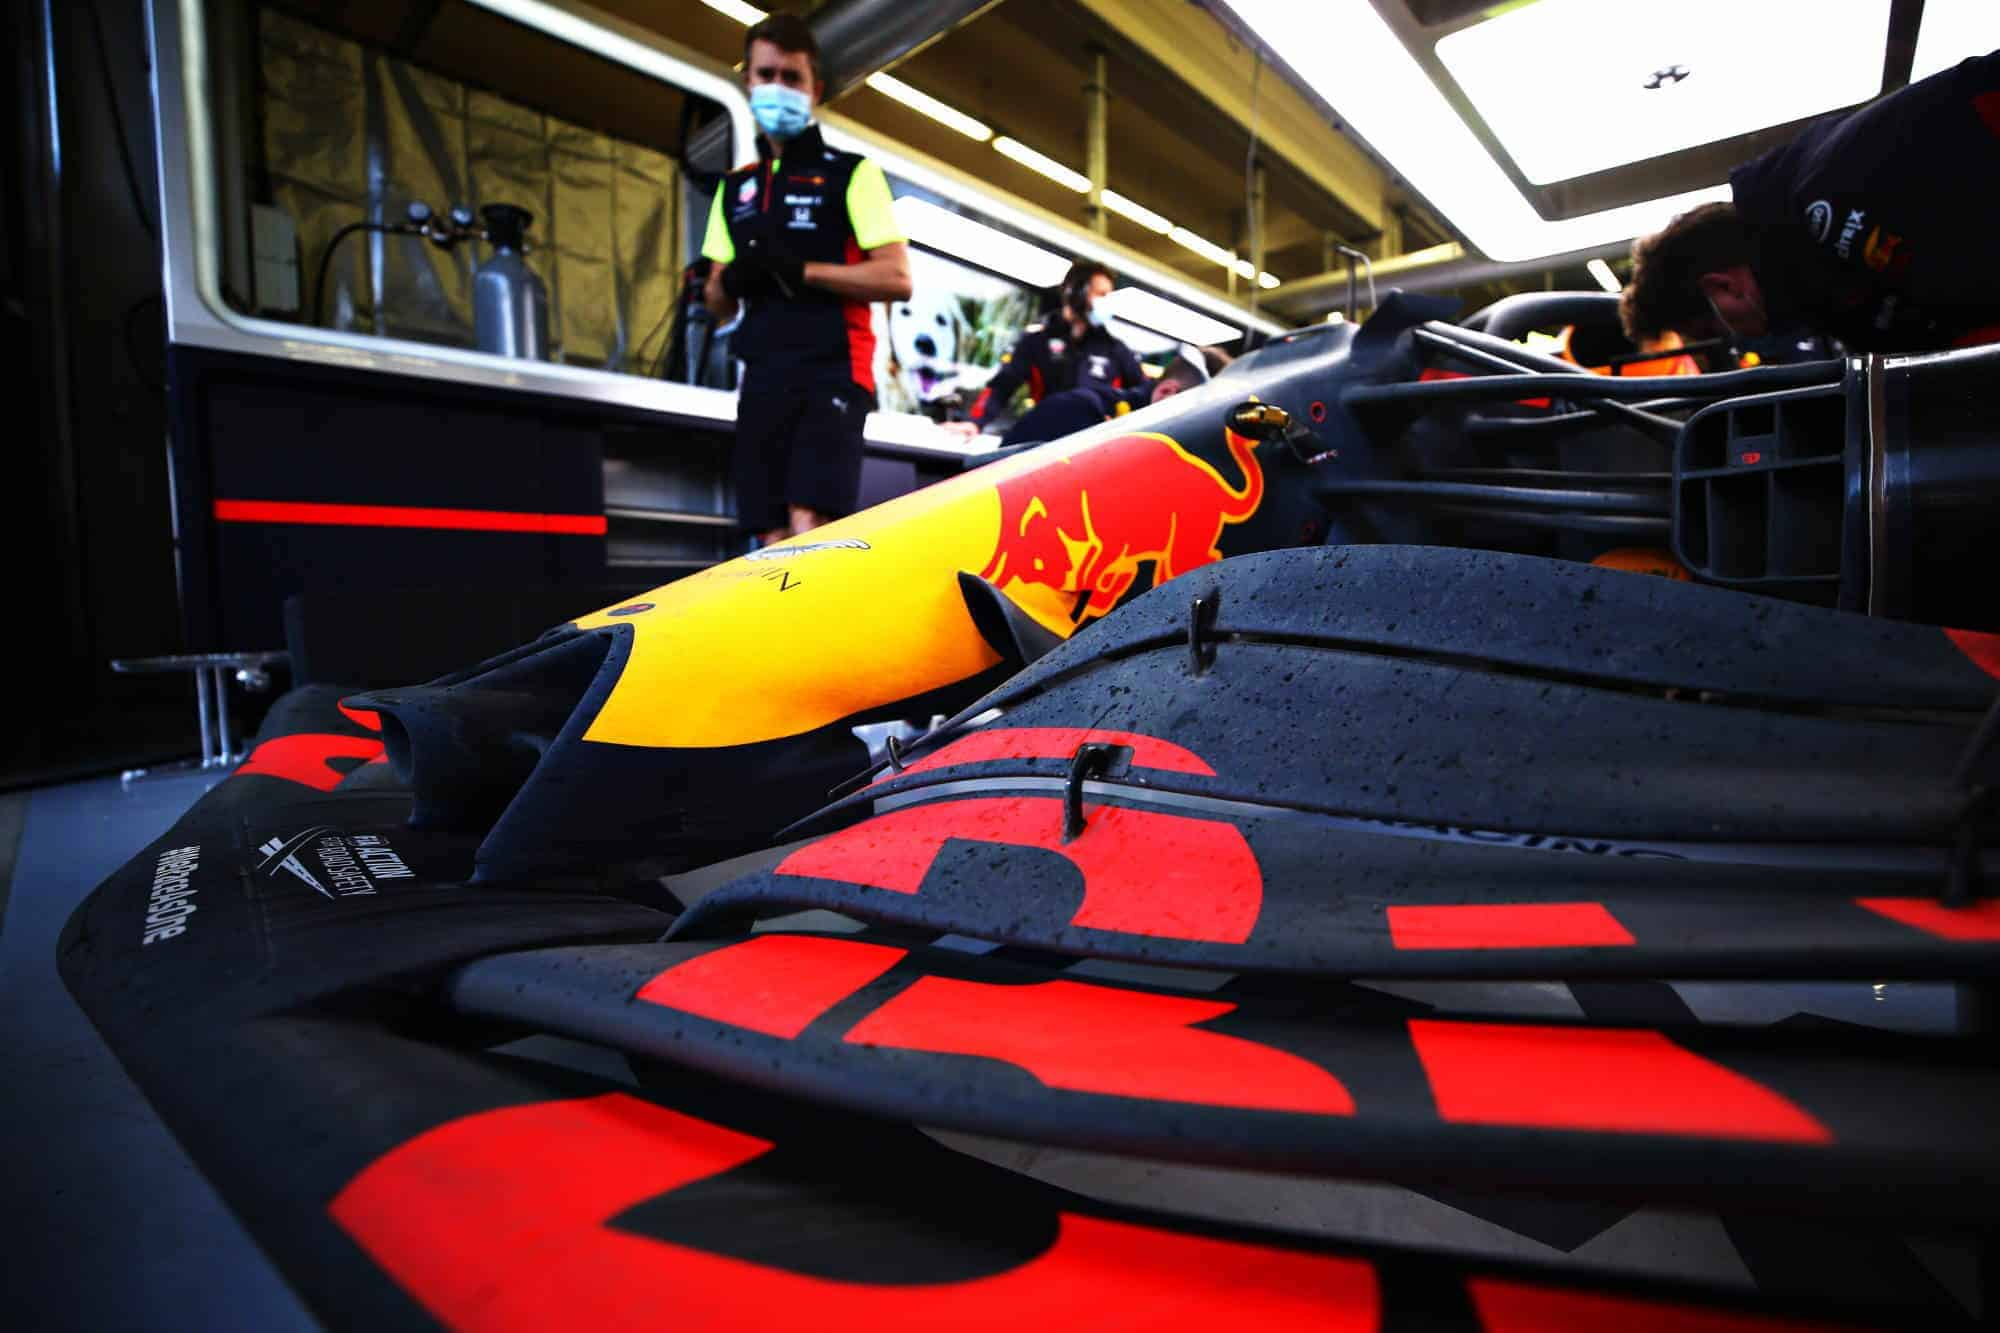 2020 Turkish GP Verstappen Red Bull RB16 front wing zoom pits Photo Red Bull